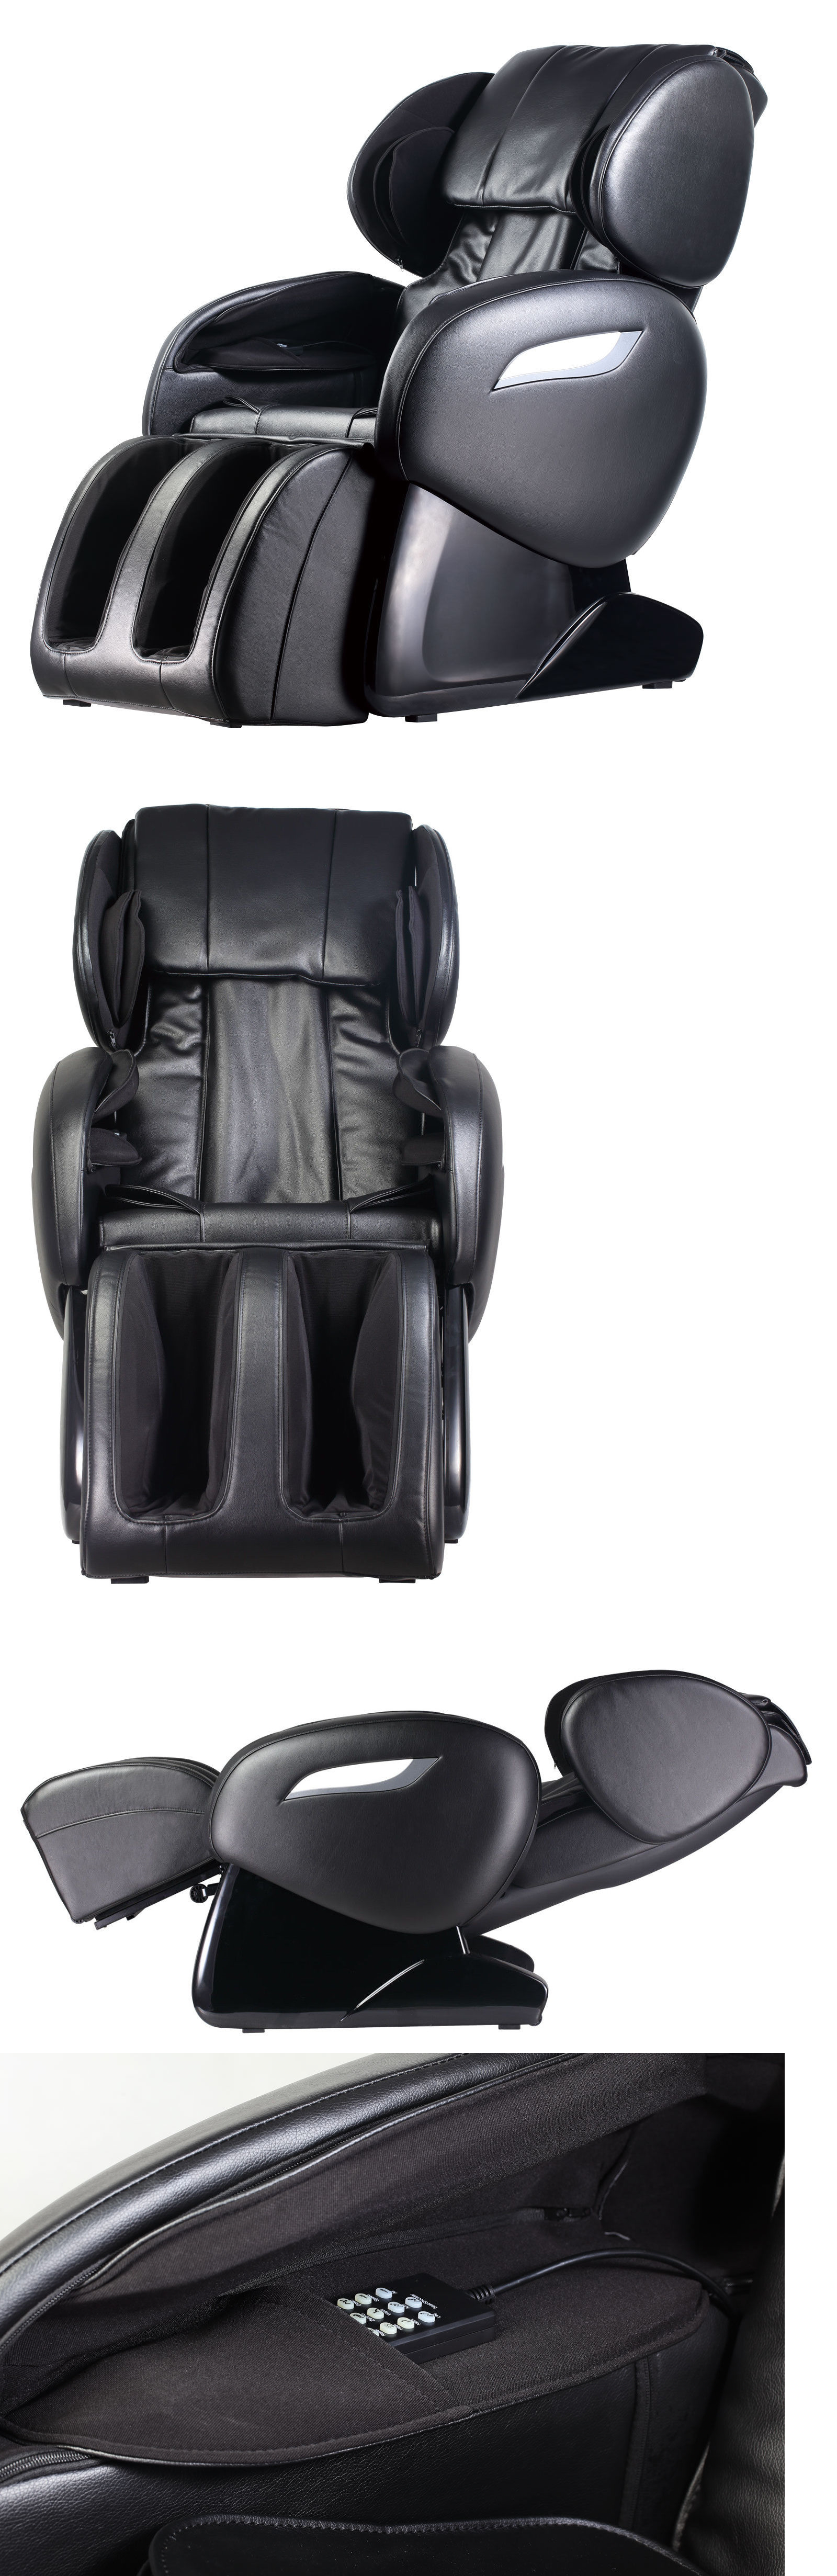 Electric Massage Chairs New Electric Full Body Shiatsu Massage